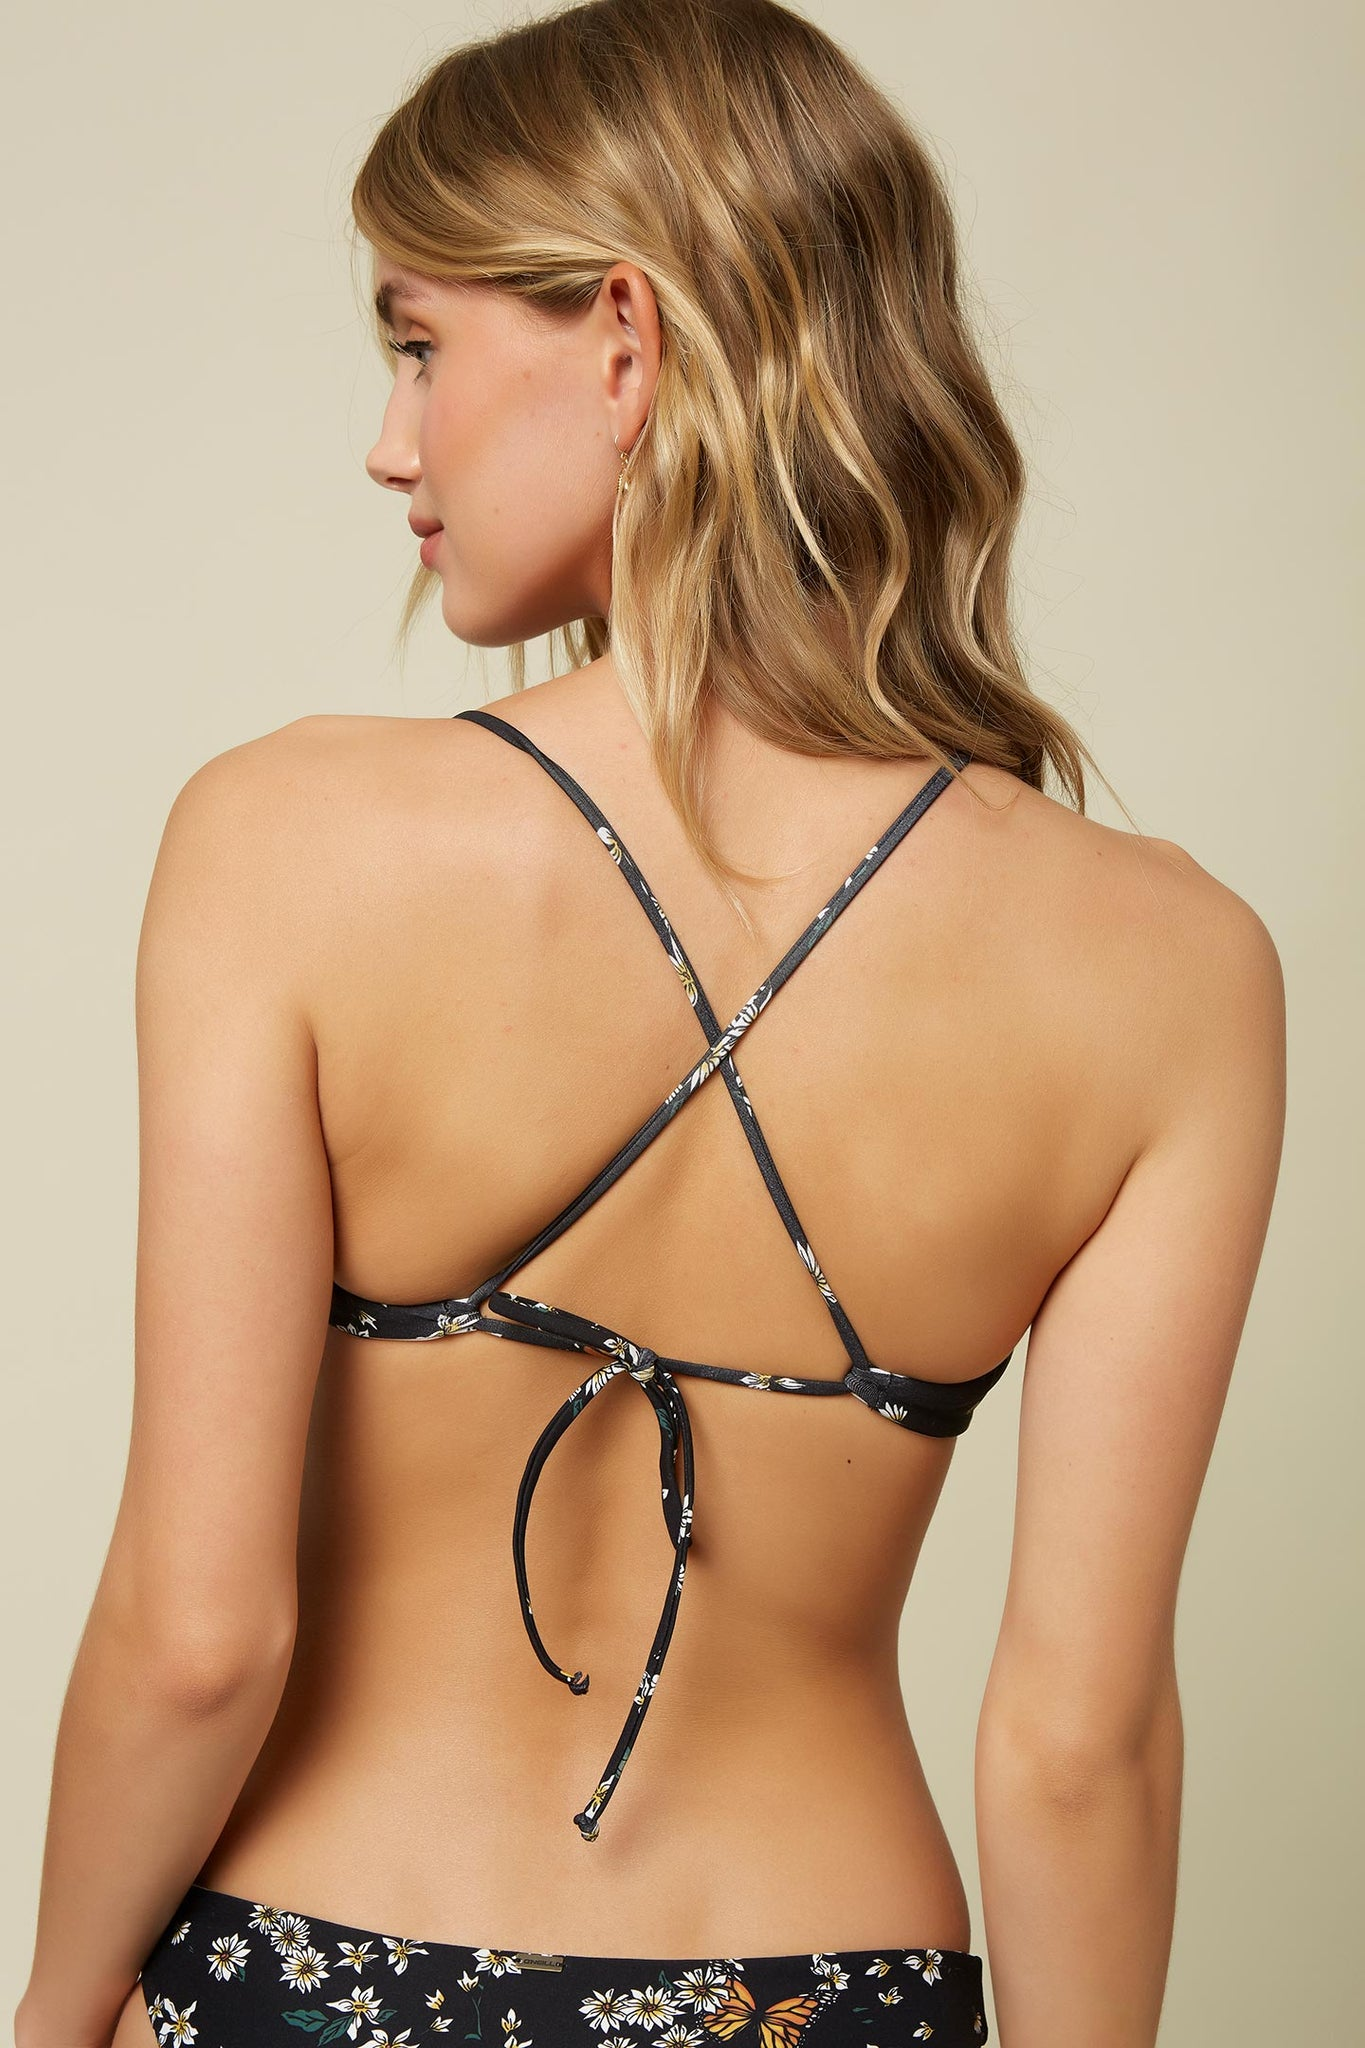 Raven Revo Cross Back Bralette Top - Black | O'Neill